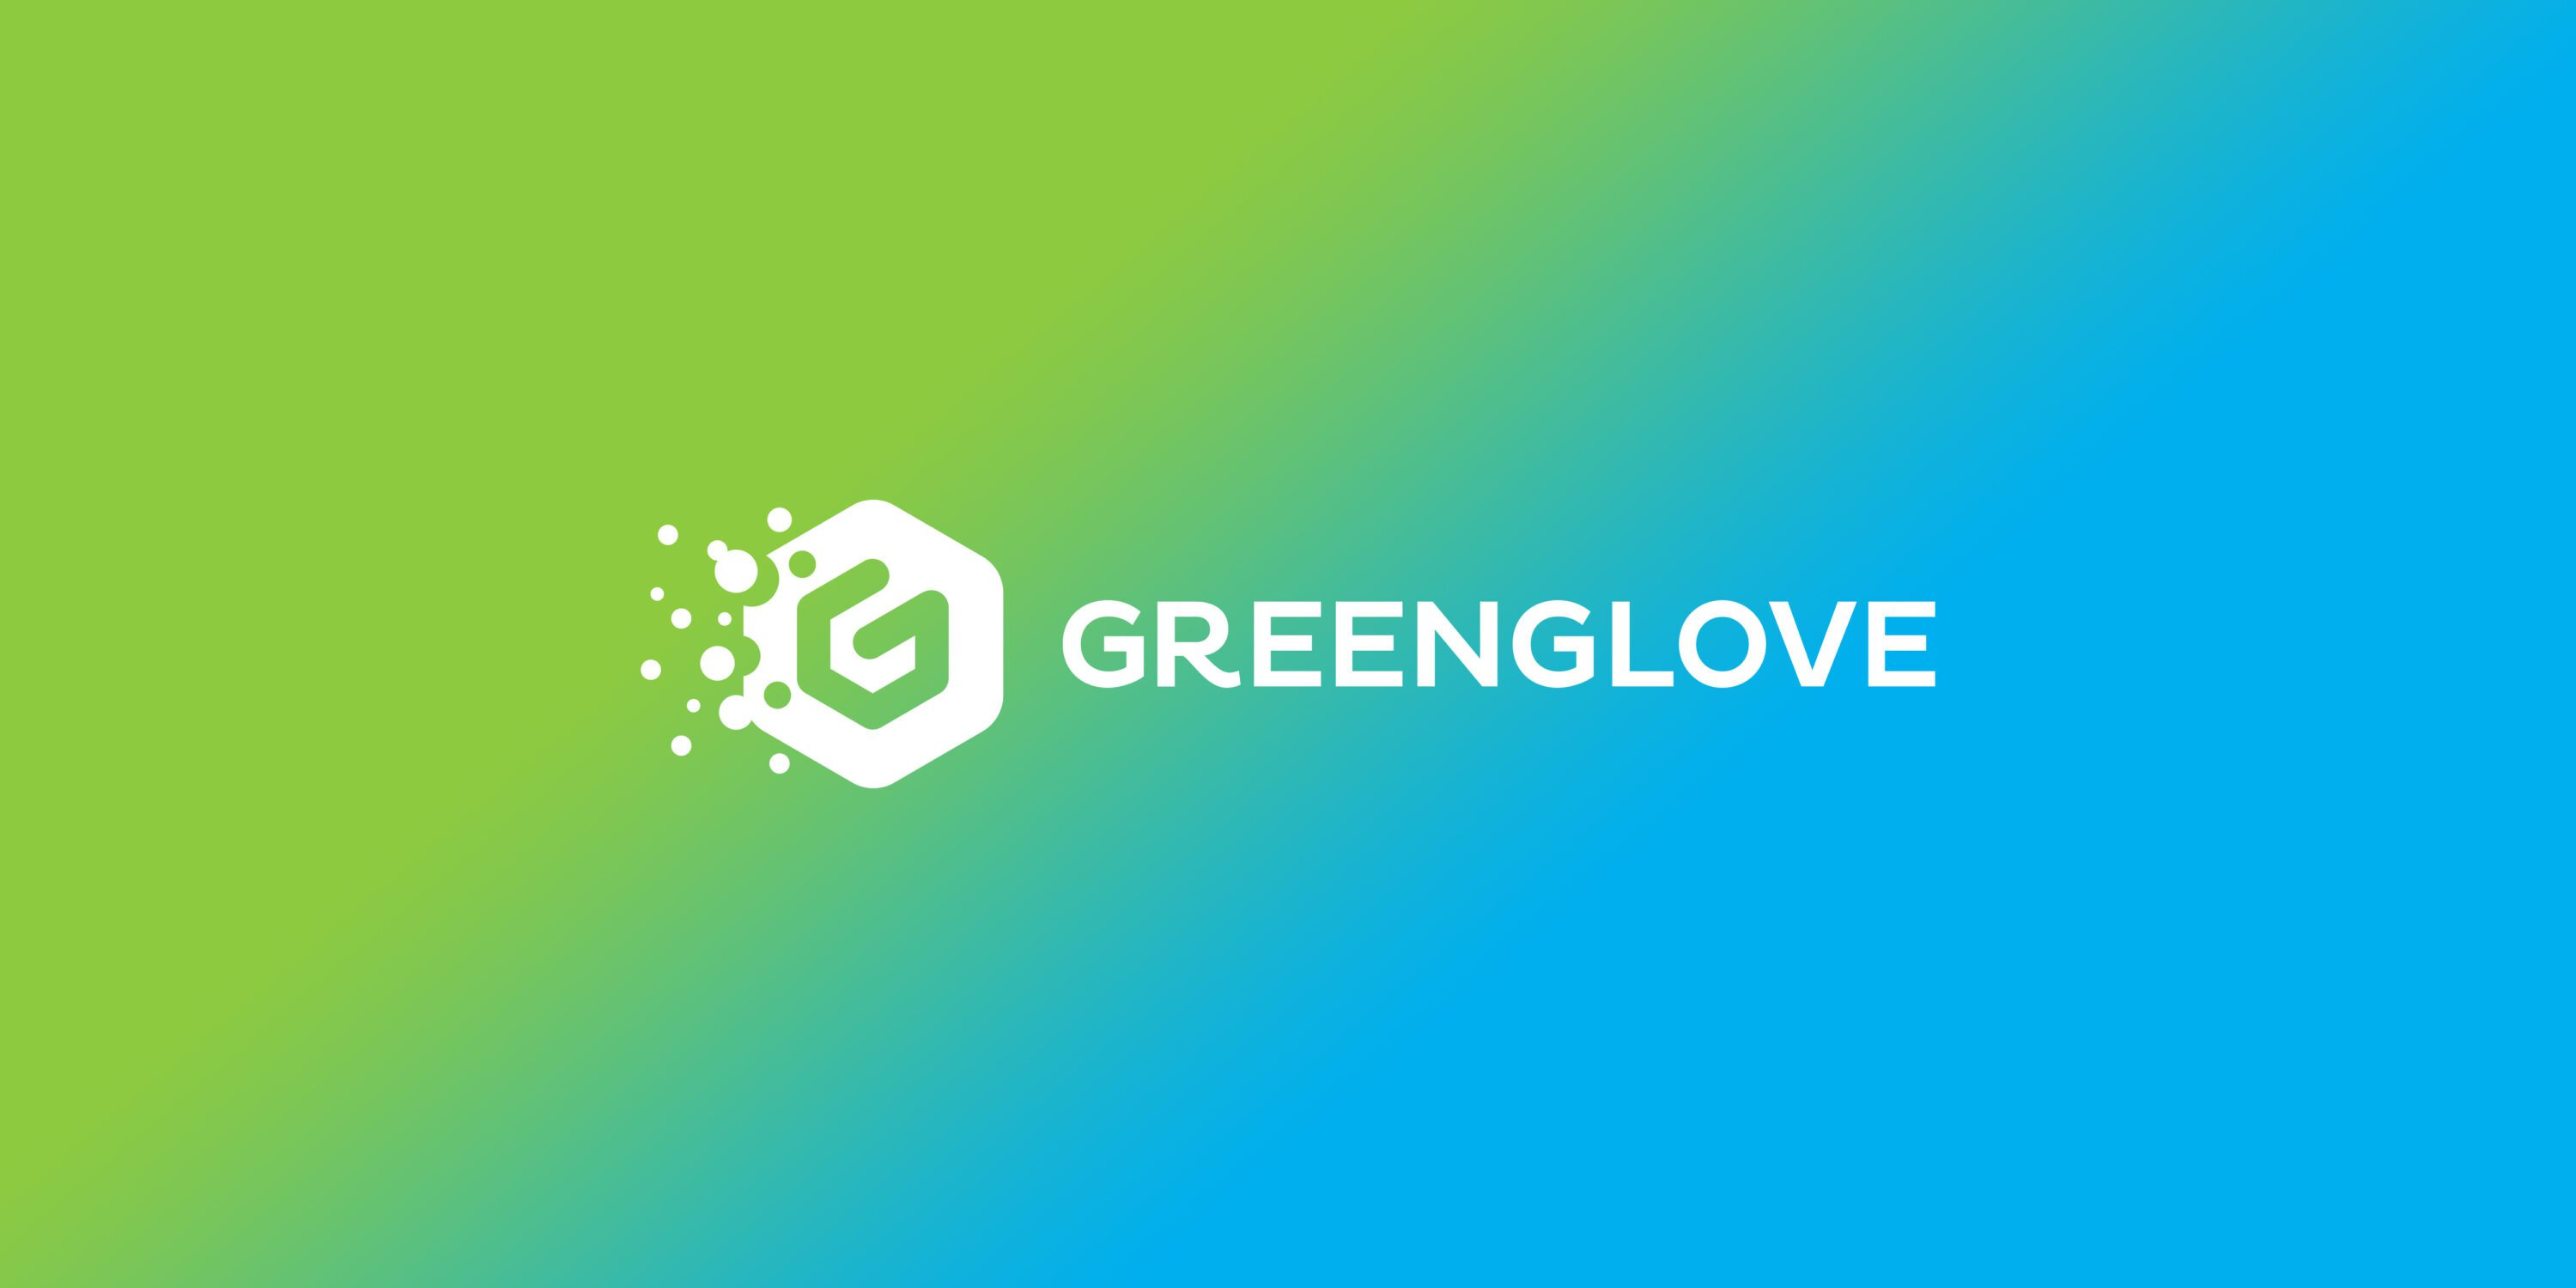 GreenGlove branding and logo design